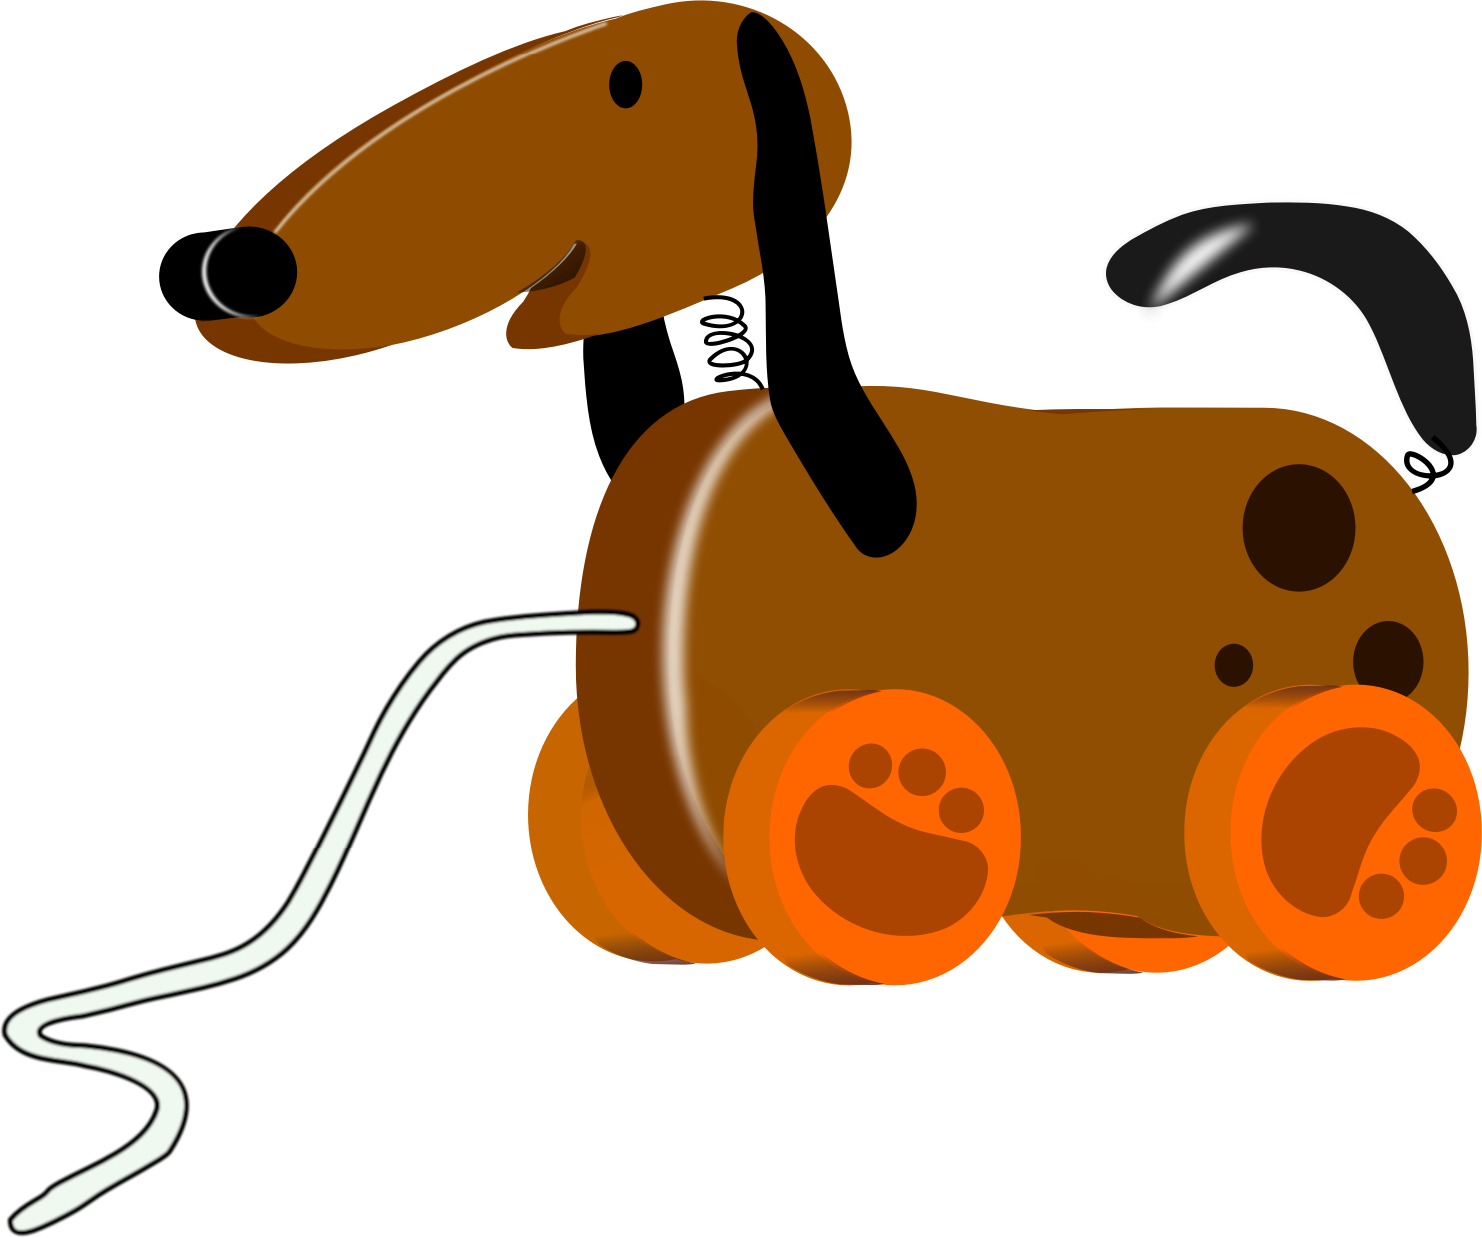 Toy dog big image. Clipart dogs stick figure